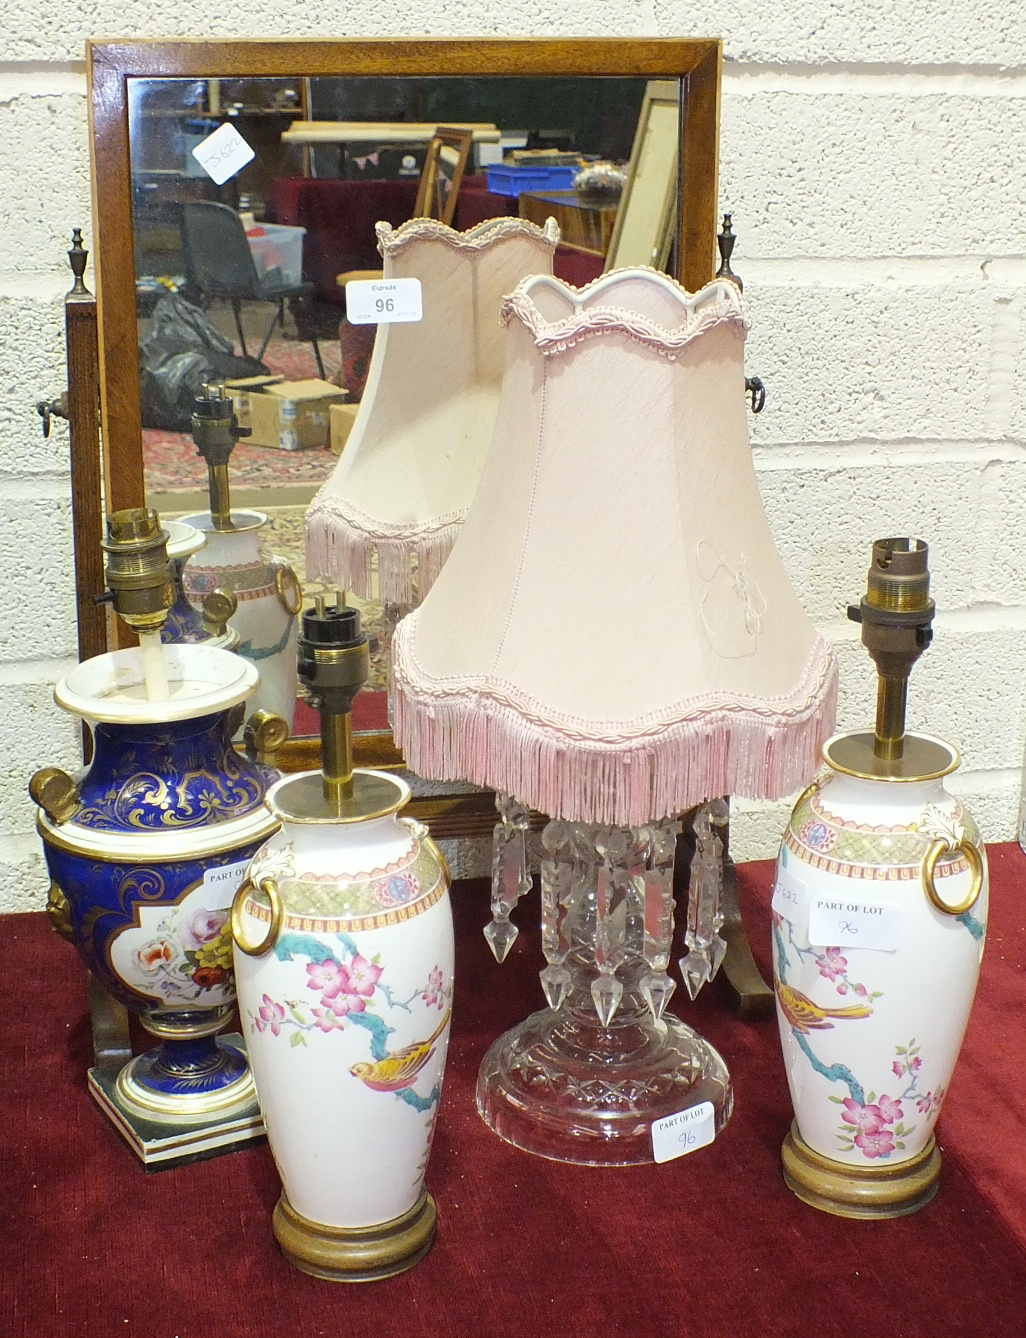 Lot 96 - A clear glass lustre-drop table lamp, a dressing glass and other ceramics and glassware.